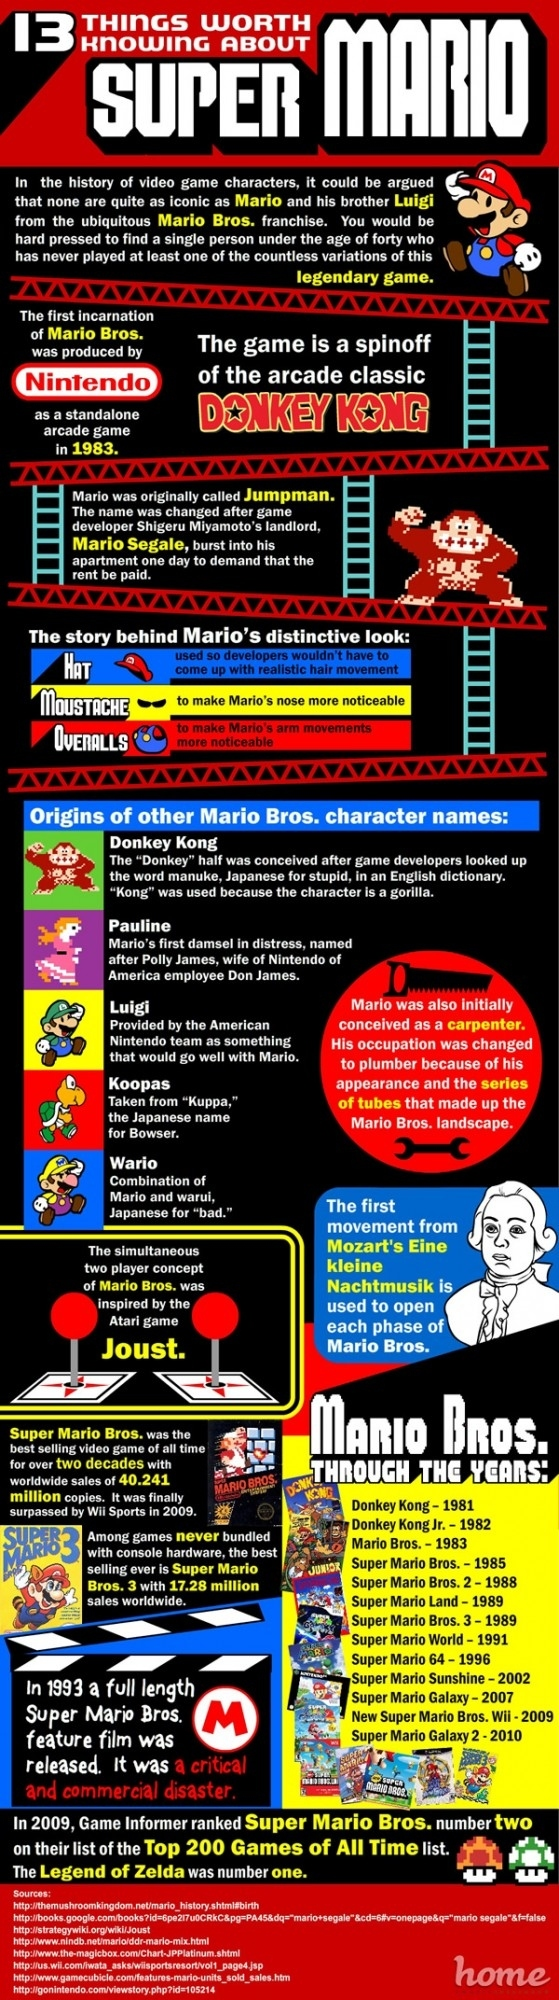 13 Things Worth Knowing About Super Mario